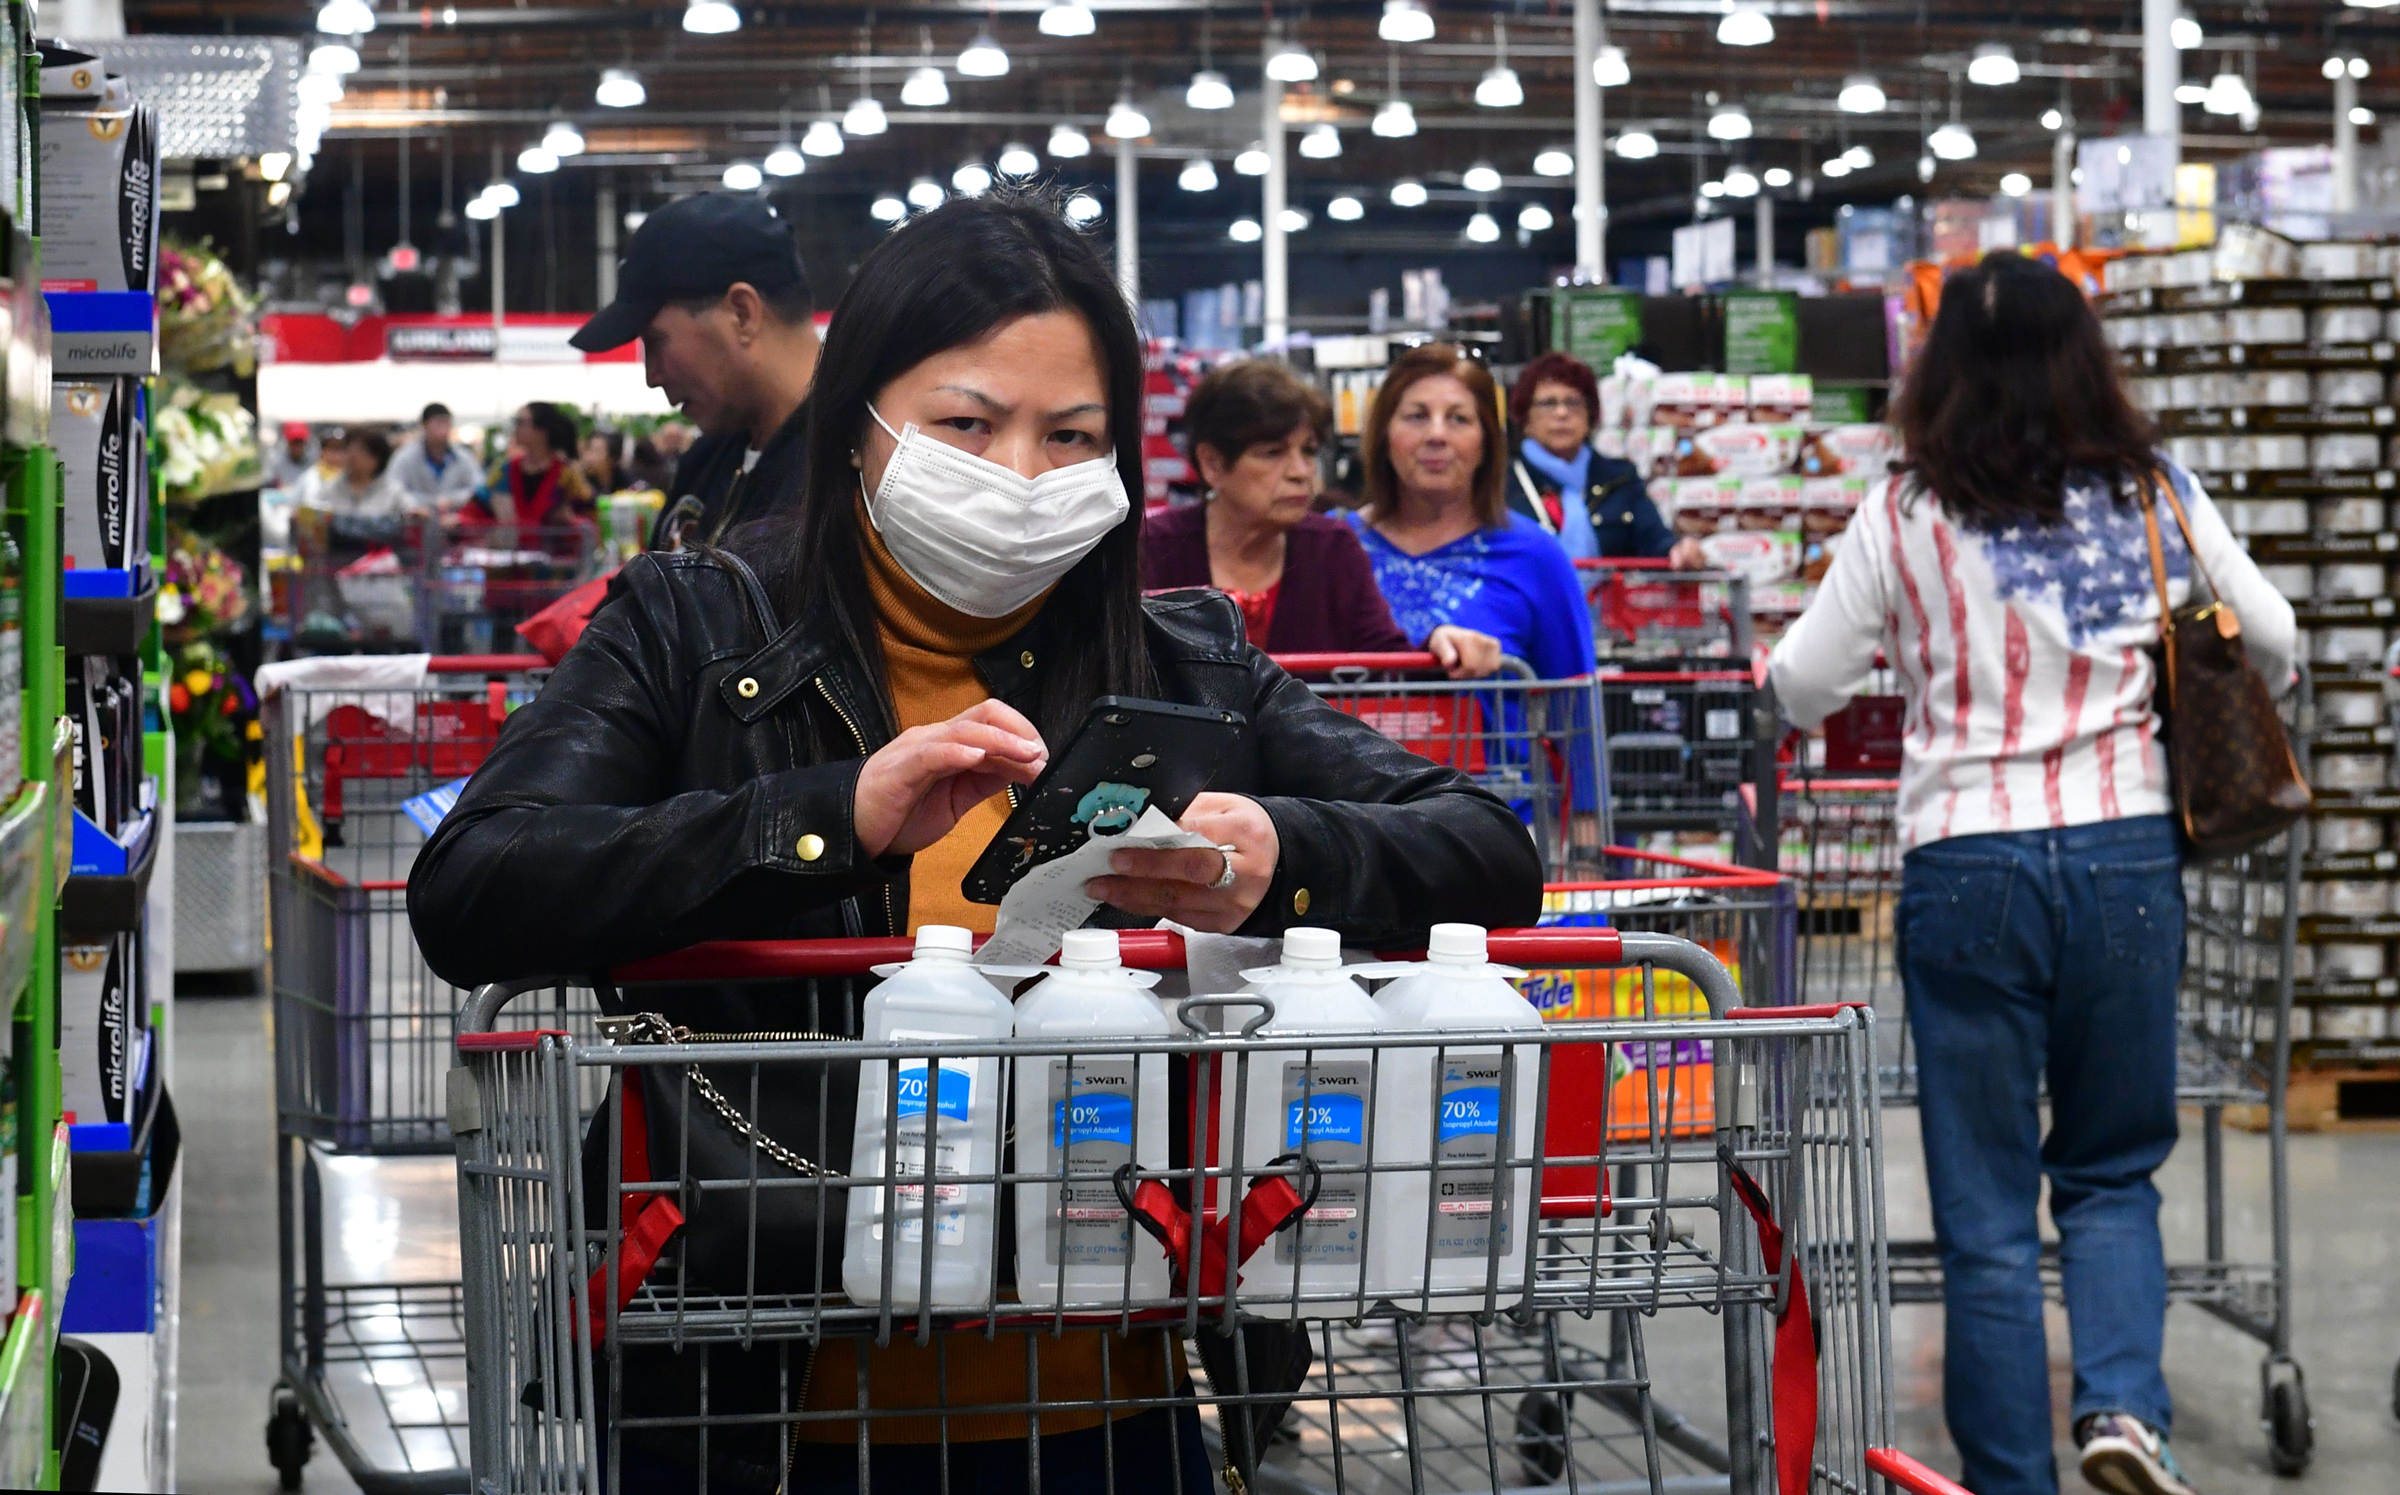 A woman wears a face mask while purchasing bottles of rubbing alcohol at a Costco store.